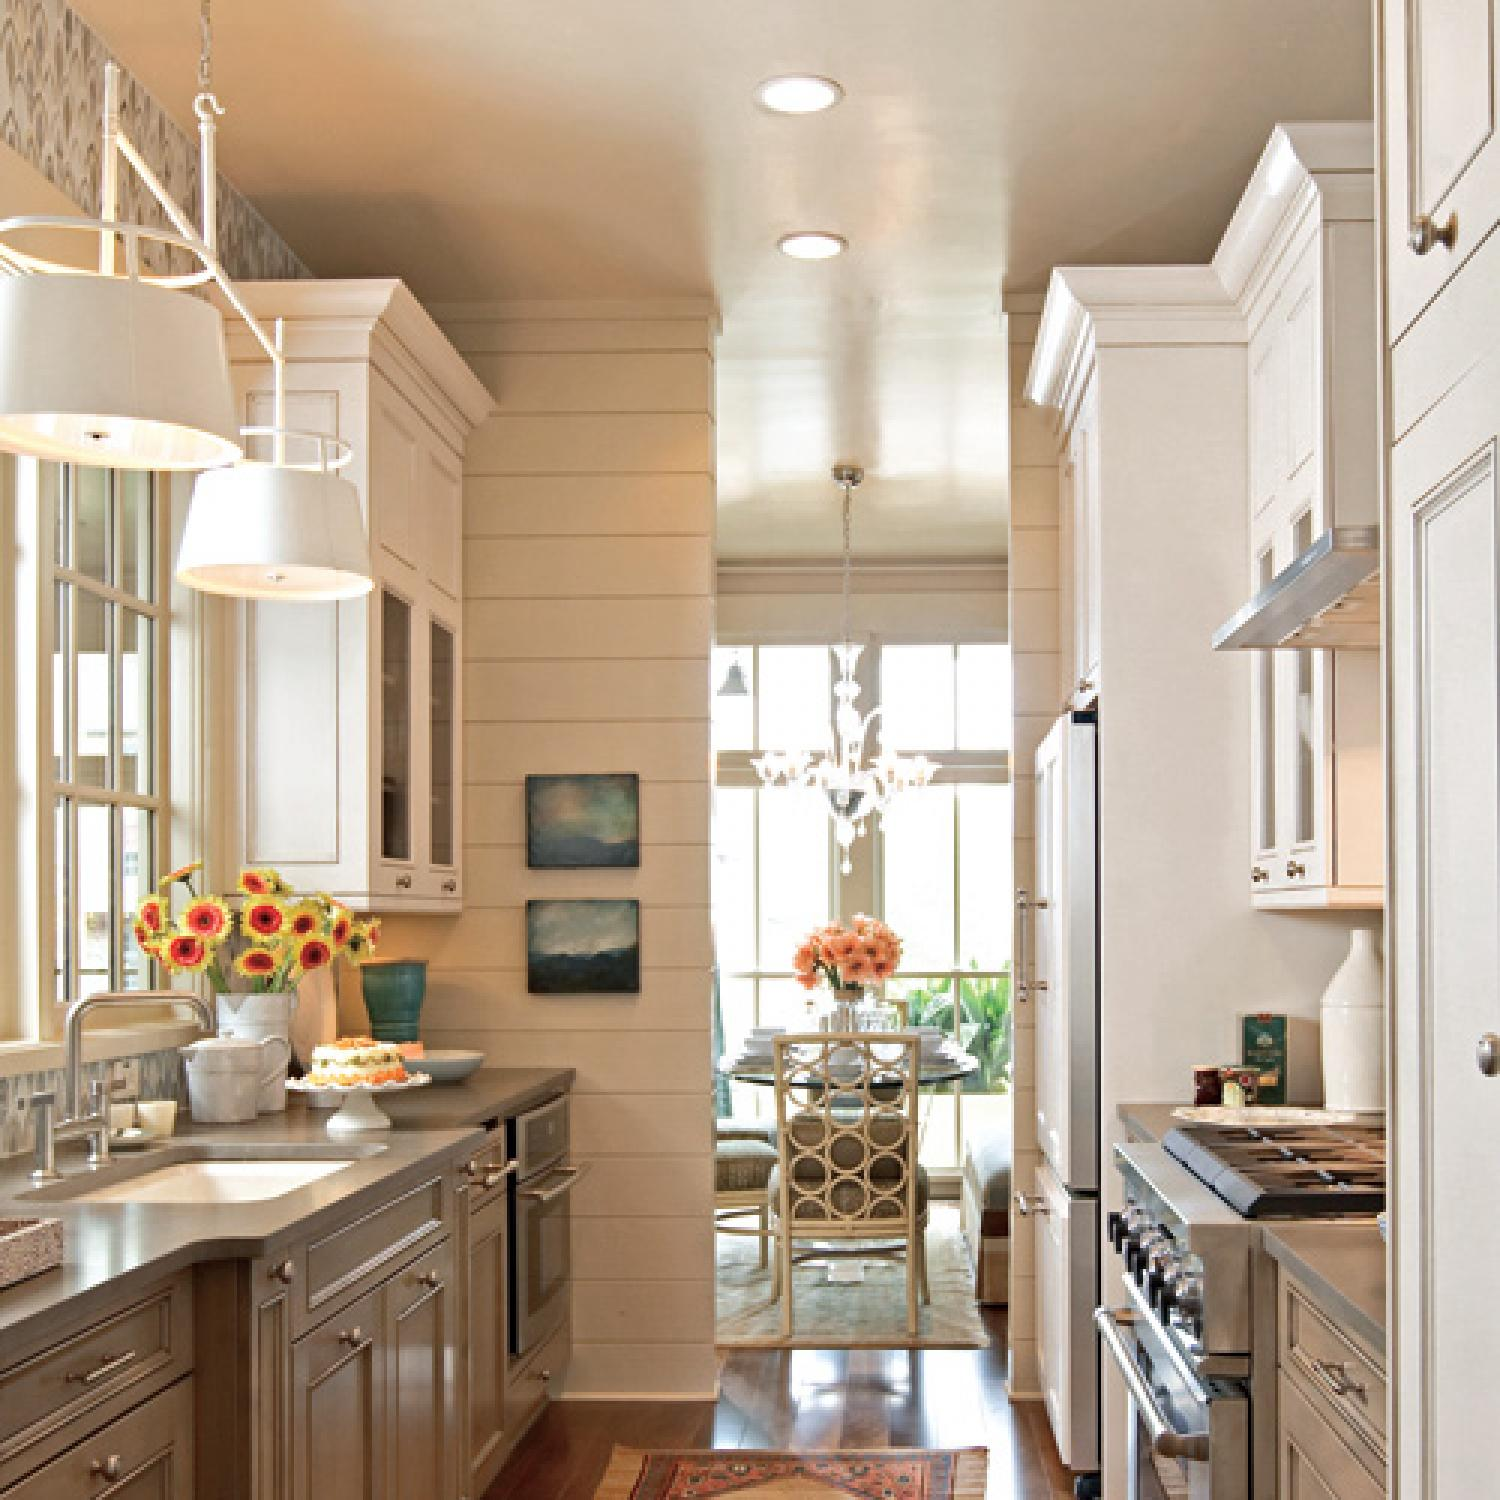 Small Kitchen Design beautiful, efficient small kitchens   traditional home ZBZERDY